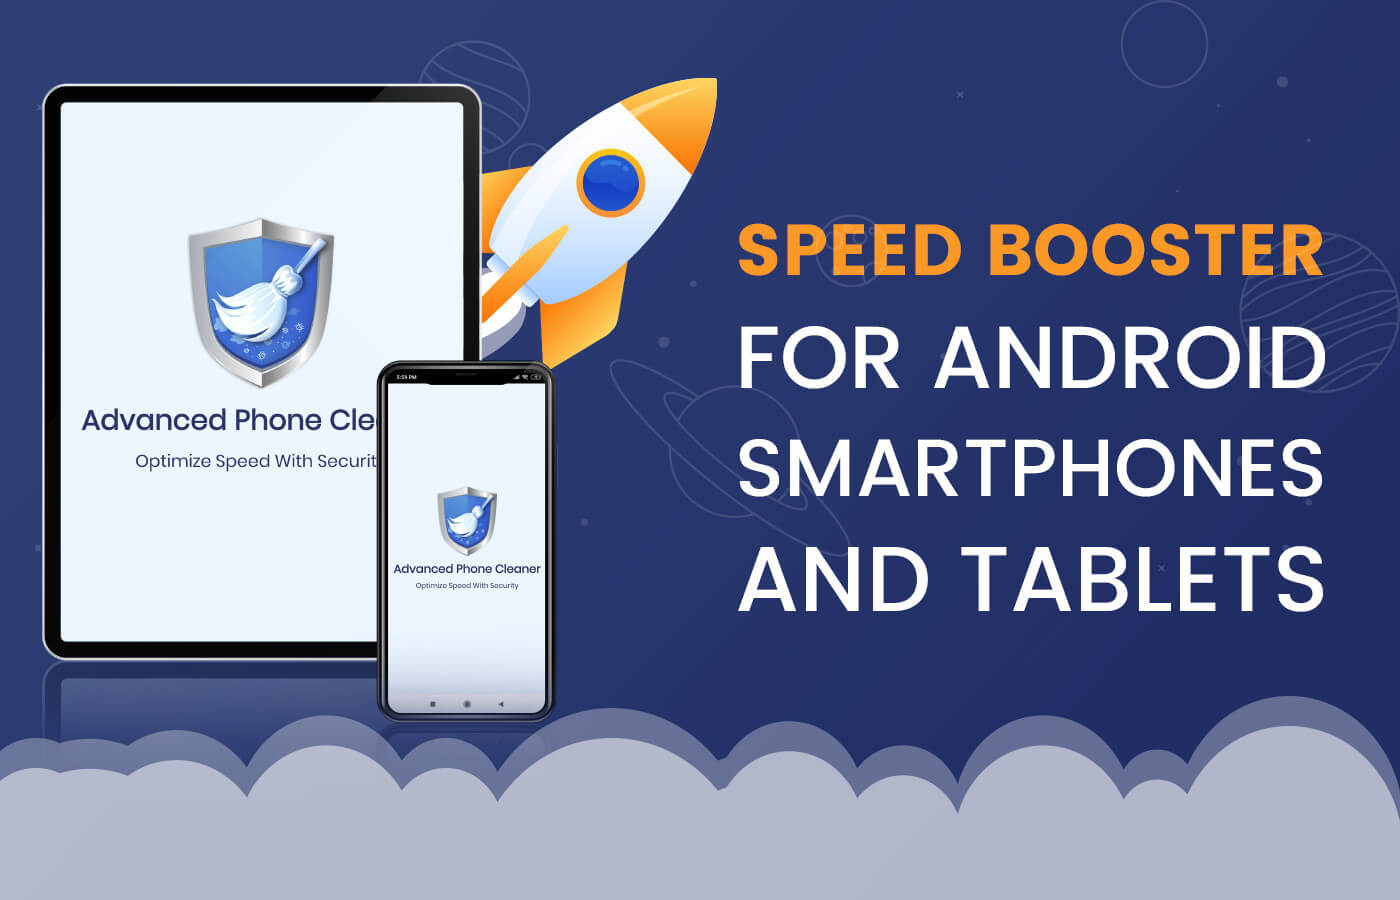 Speed Booster for Android Smartphones and Tablets